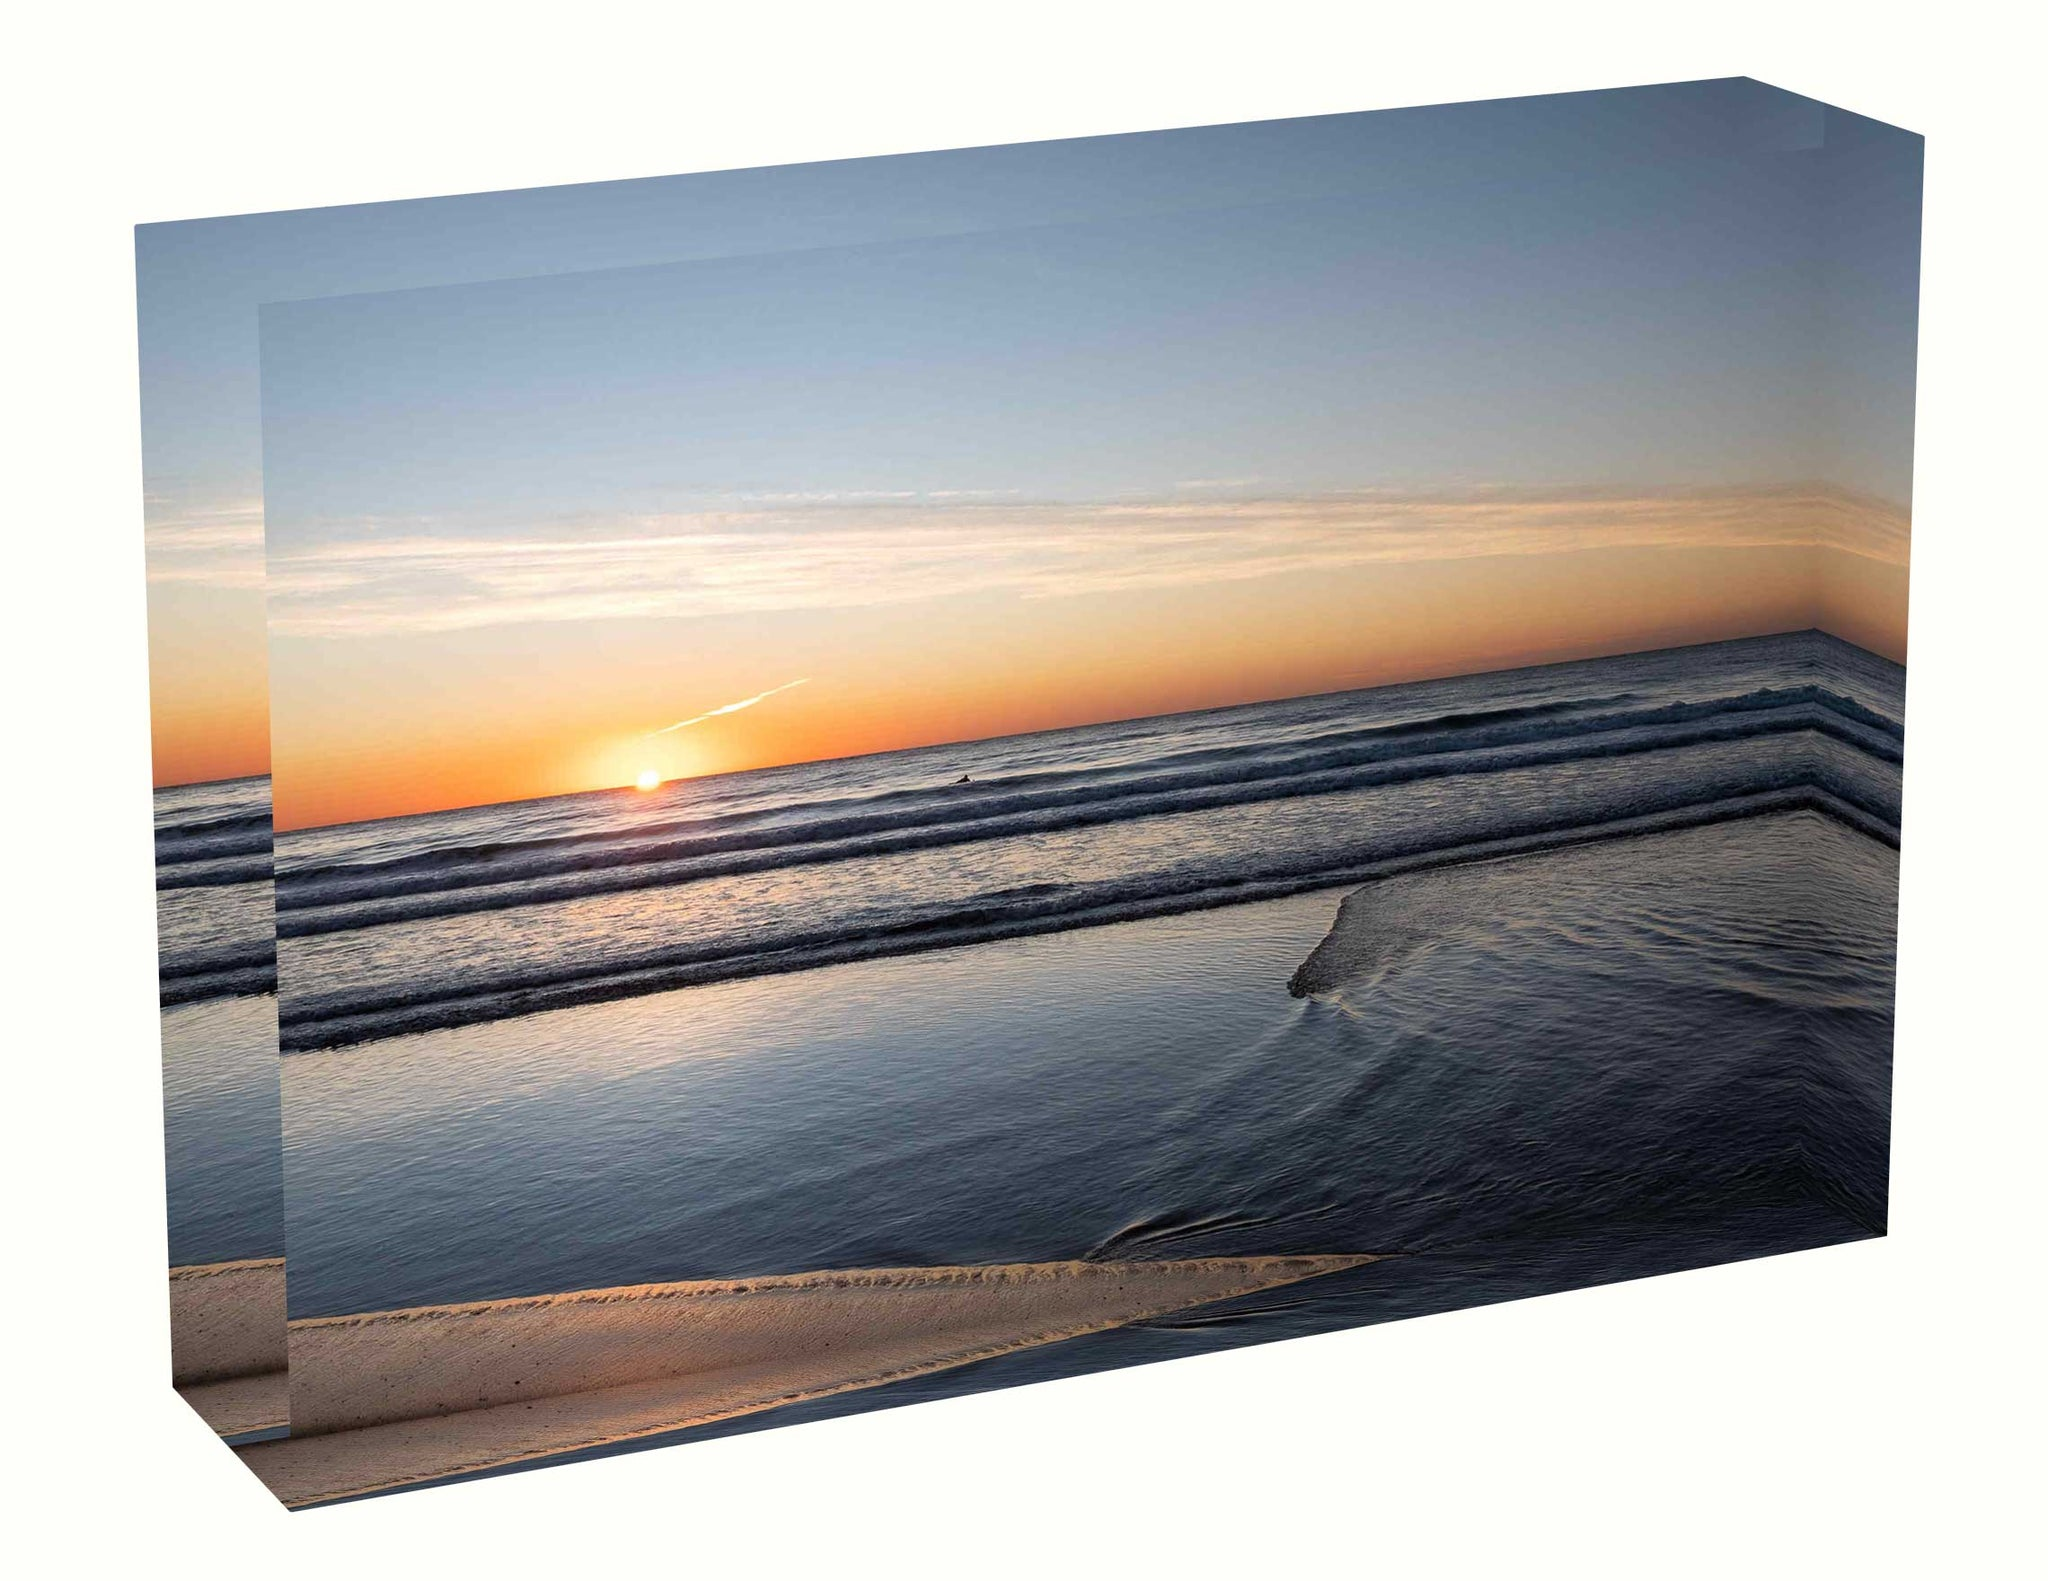 Acrylic block Sunrise photo from the 26th April 2020 at Manly Beach, Sydney